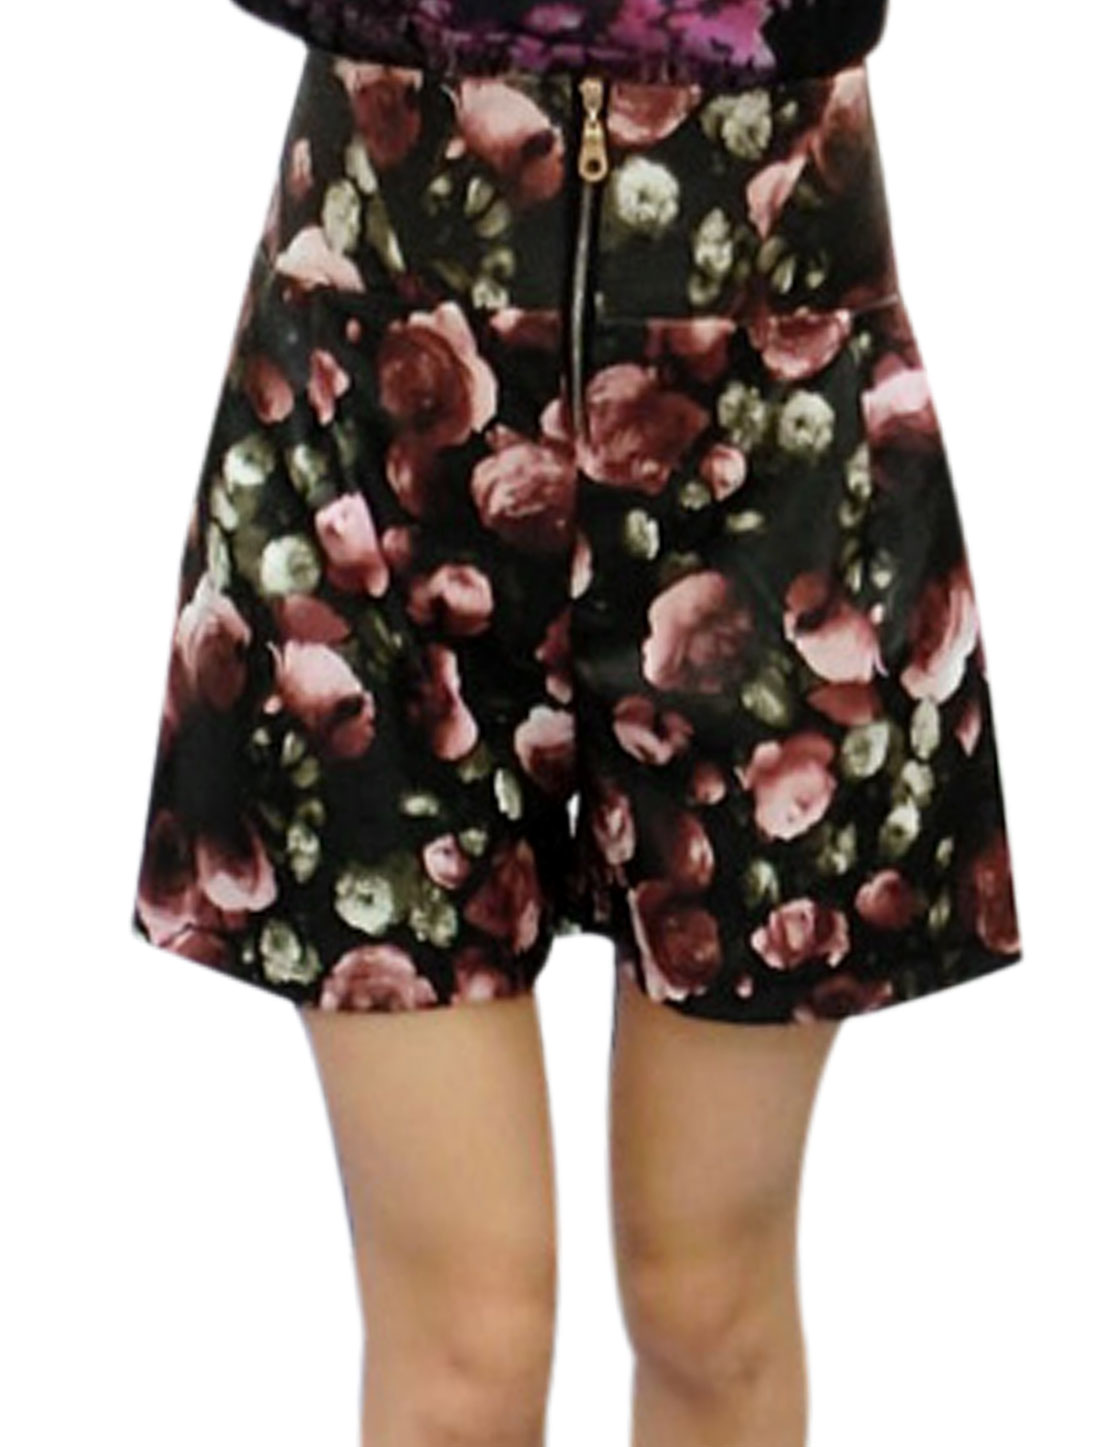 Women Fashion Zip Fly Floral Print Imitation Leather Shorts Black Pale Red M